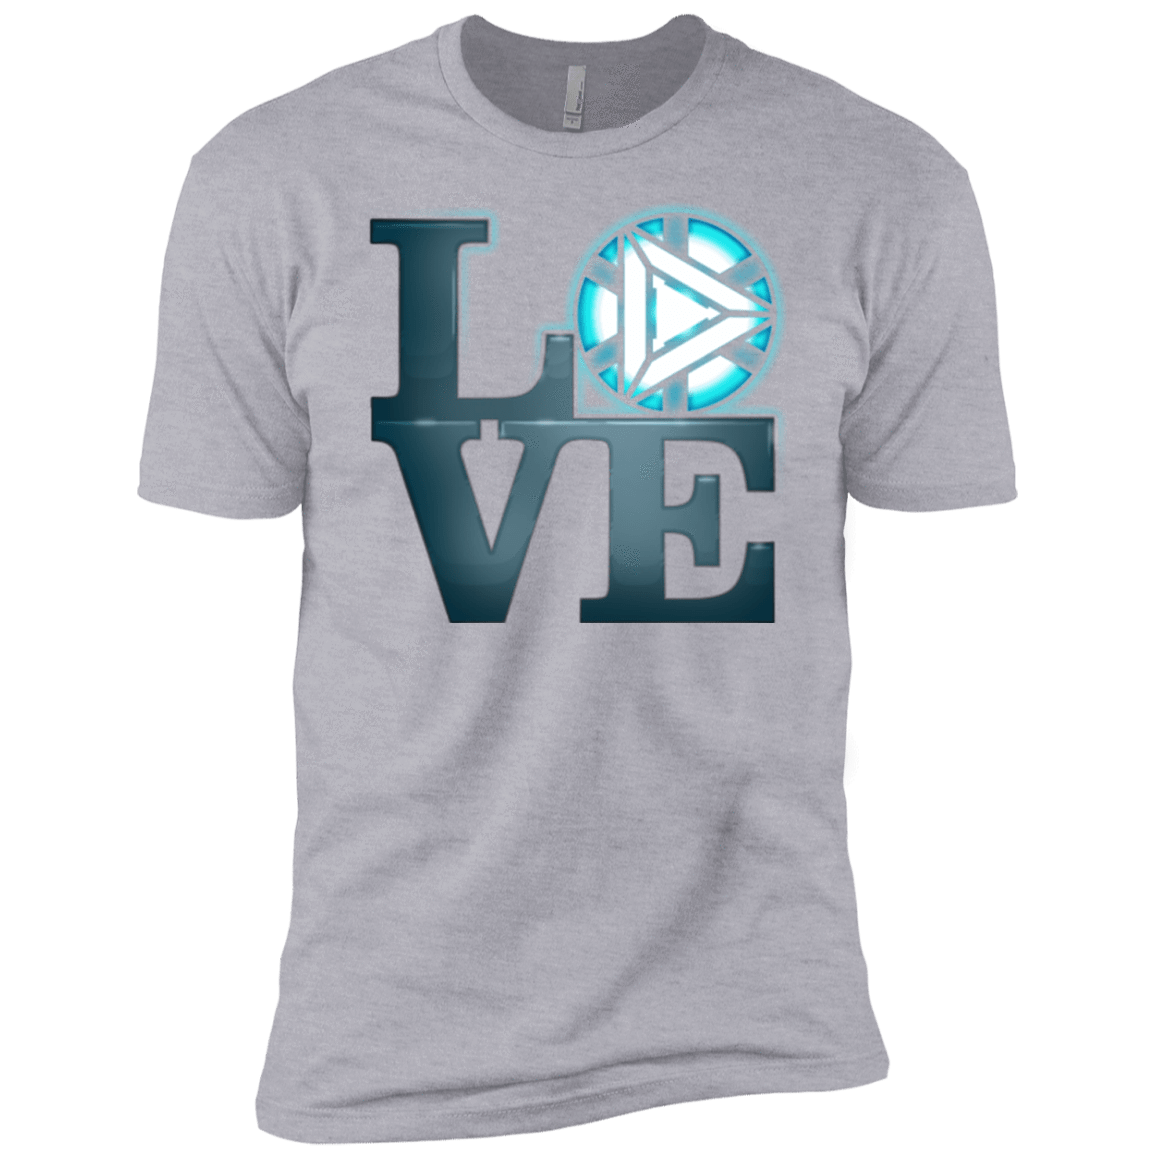 Love Stark Boys Premium T-Shirt